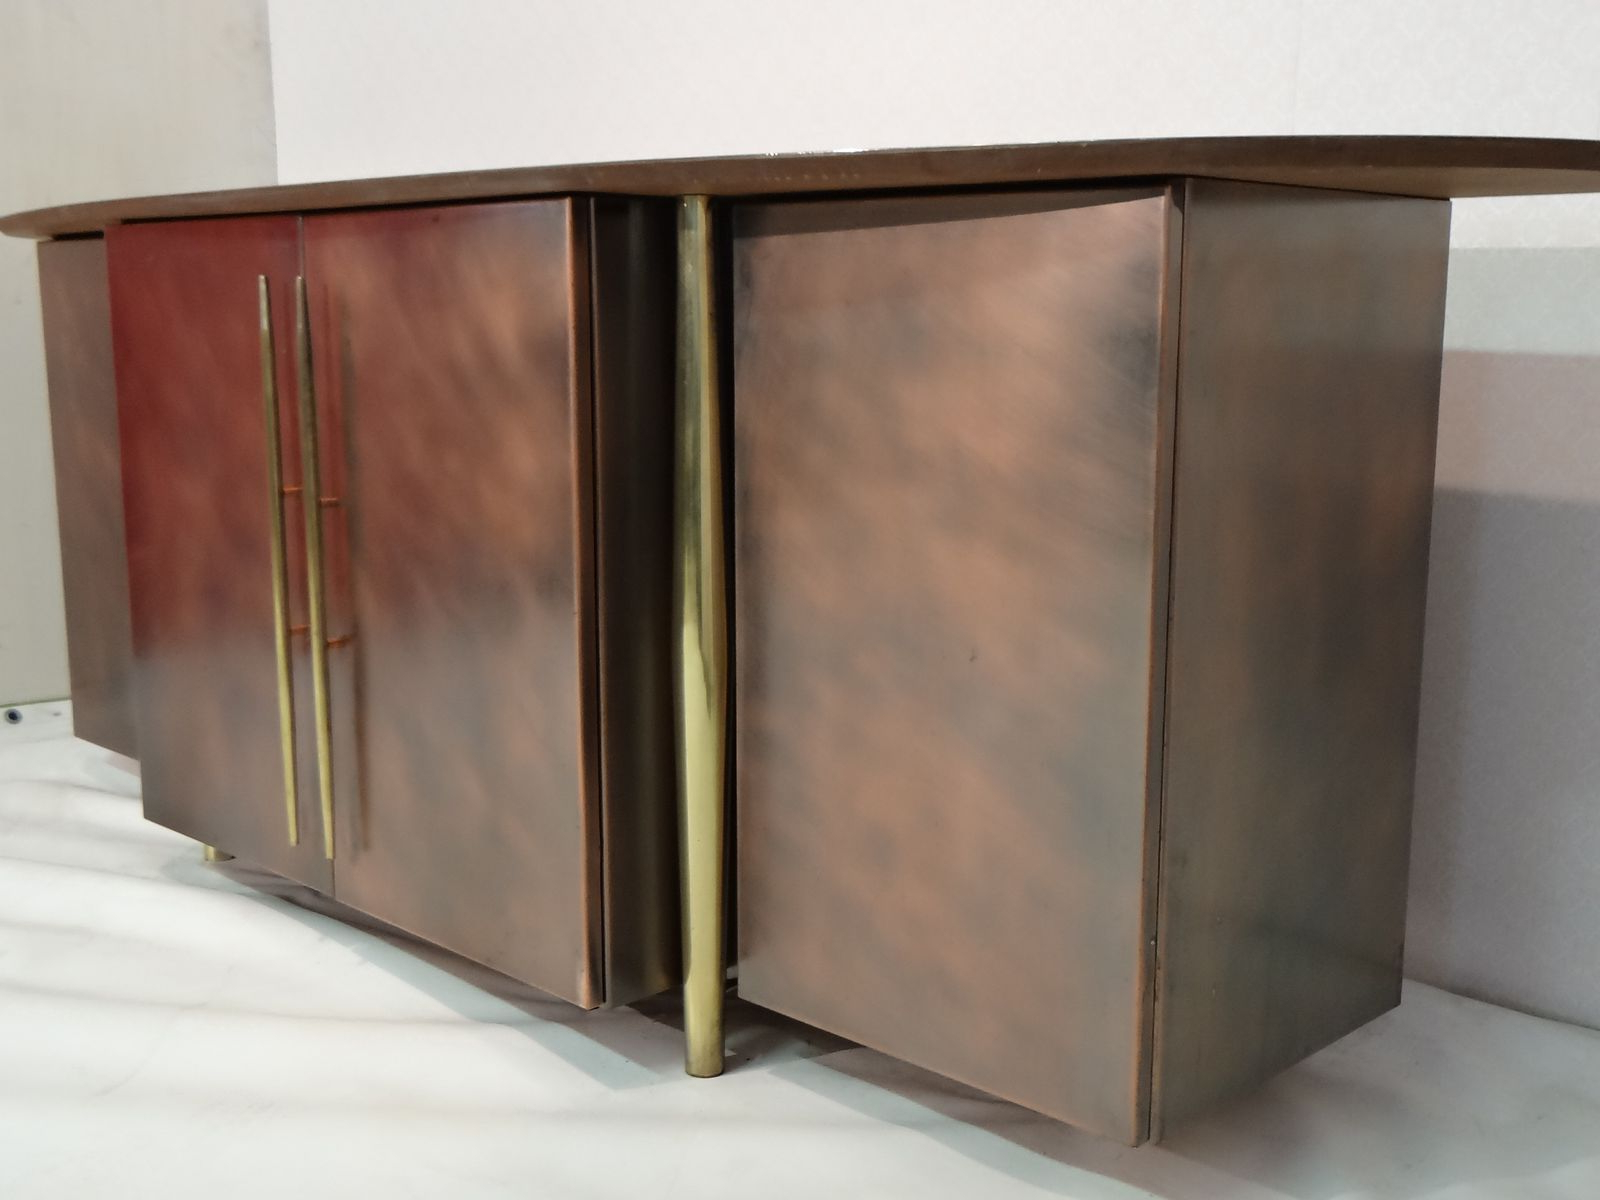 Popular Vintage Brass Sideboard From Belgo Chrom For Sale At Pamono Intended For Aged Brass Sideboards (View 14 of 20)